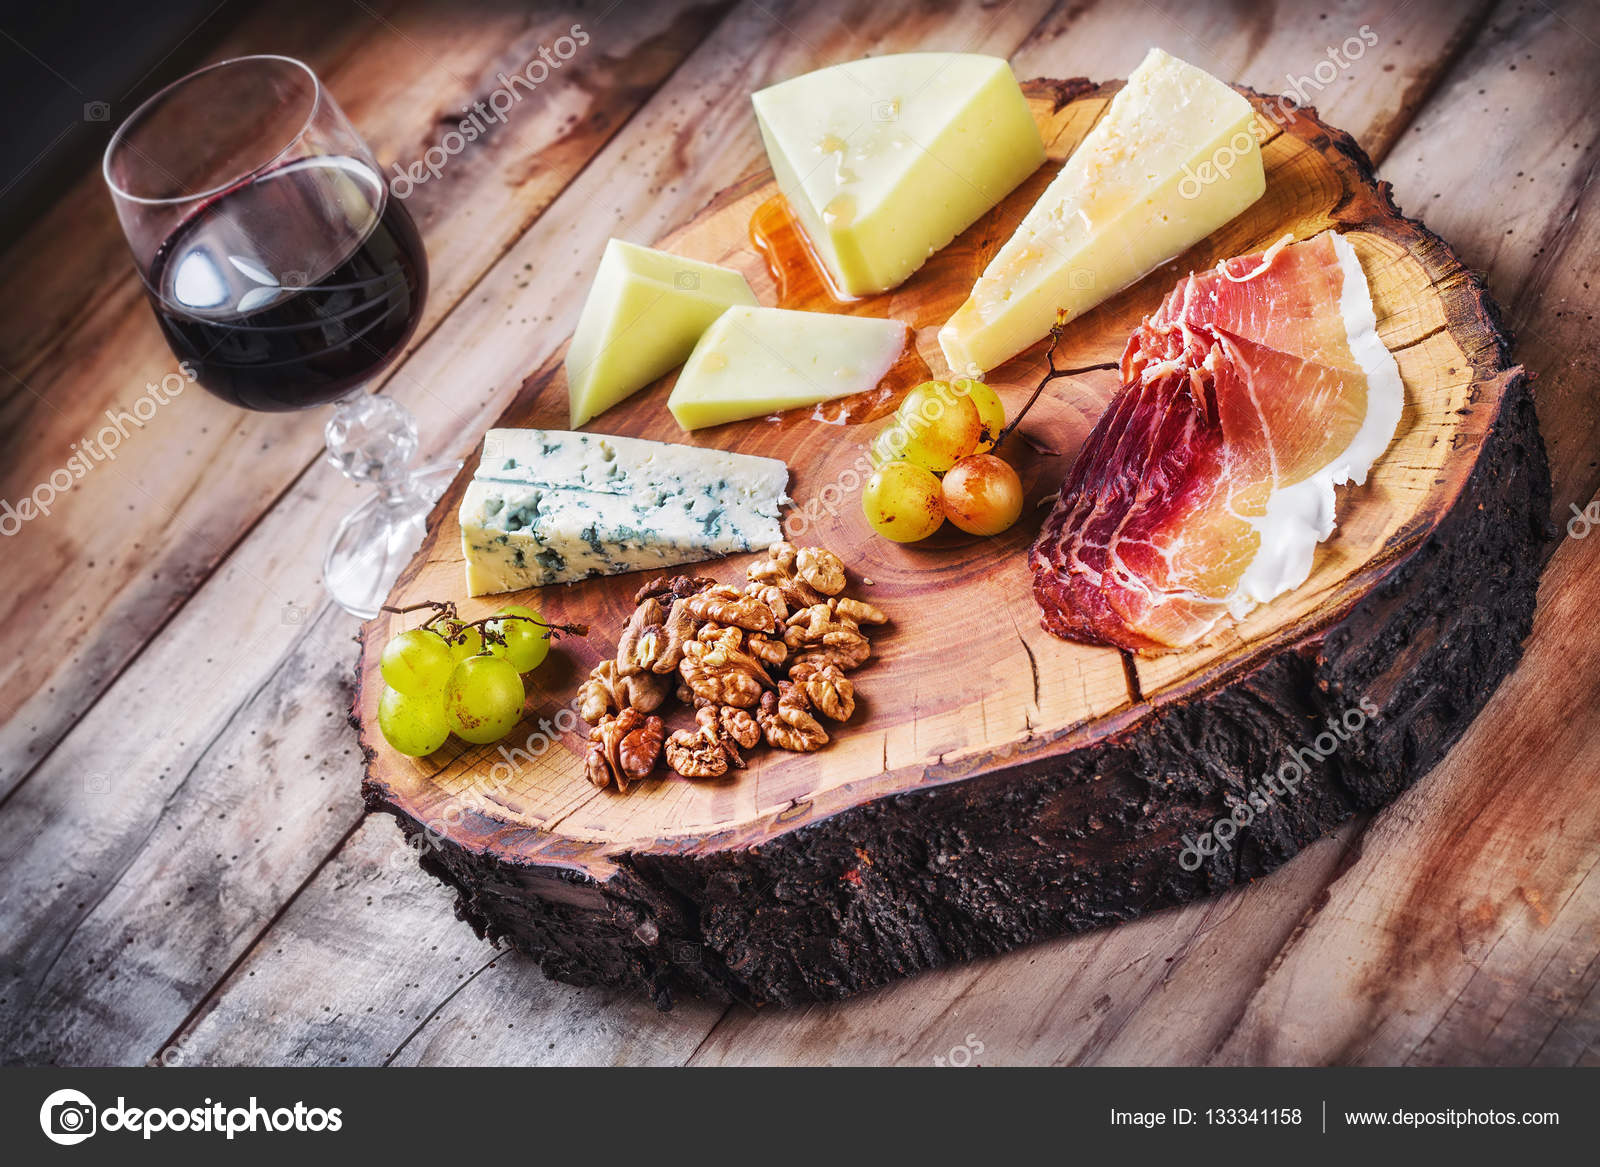 Mediterrane Küche An Bord Rustic Mediterranean Cheese Board And A Glass Of Red Wine Stock